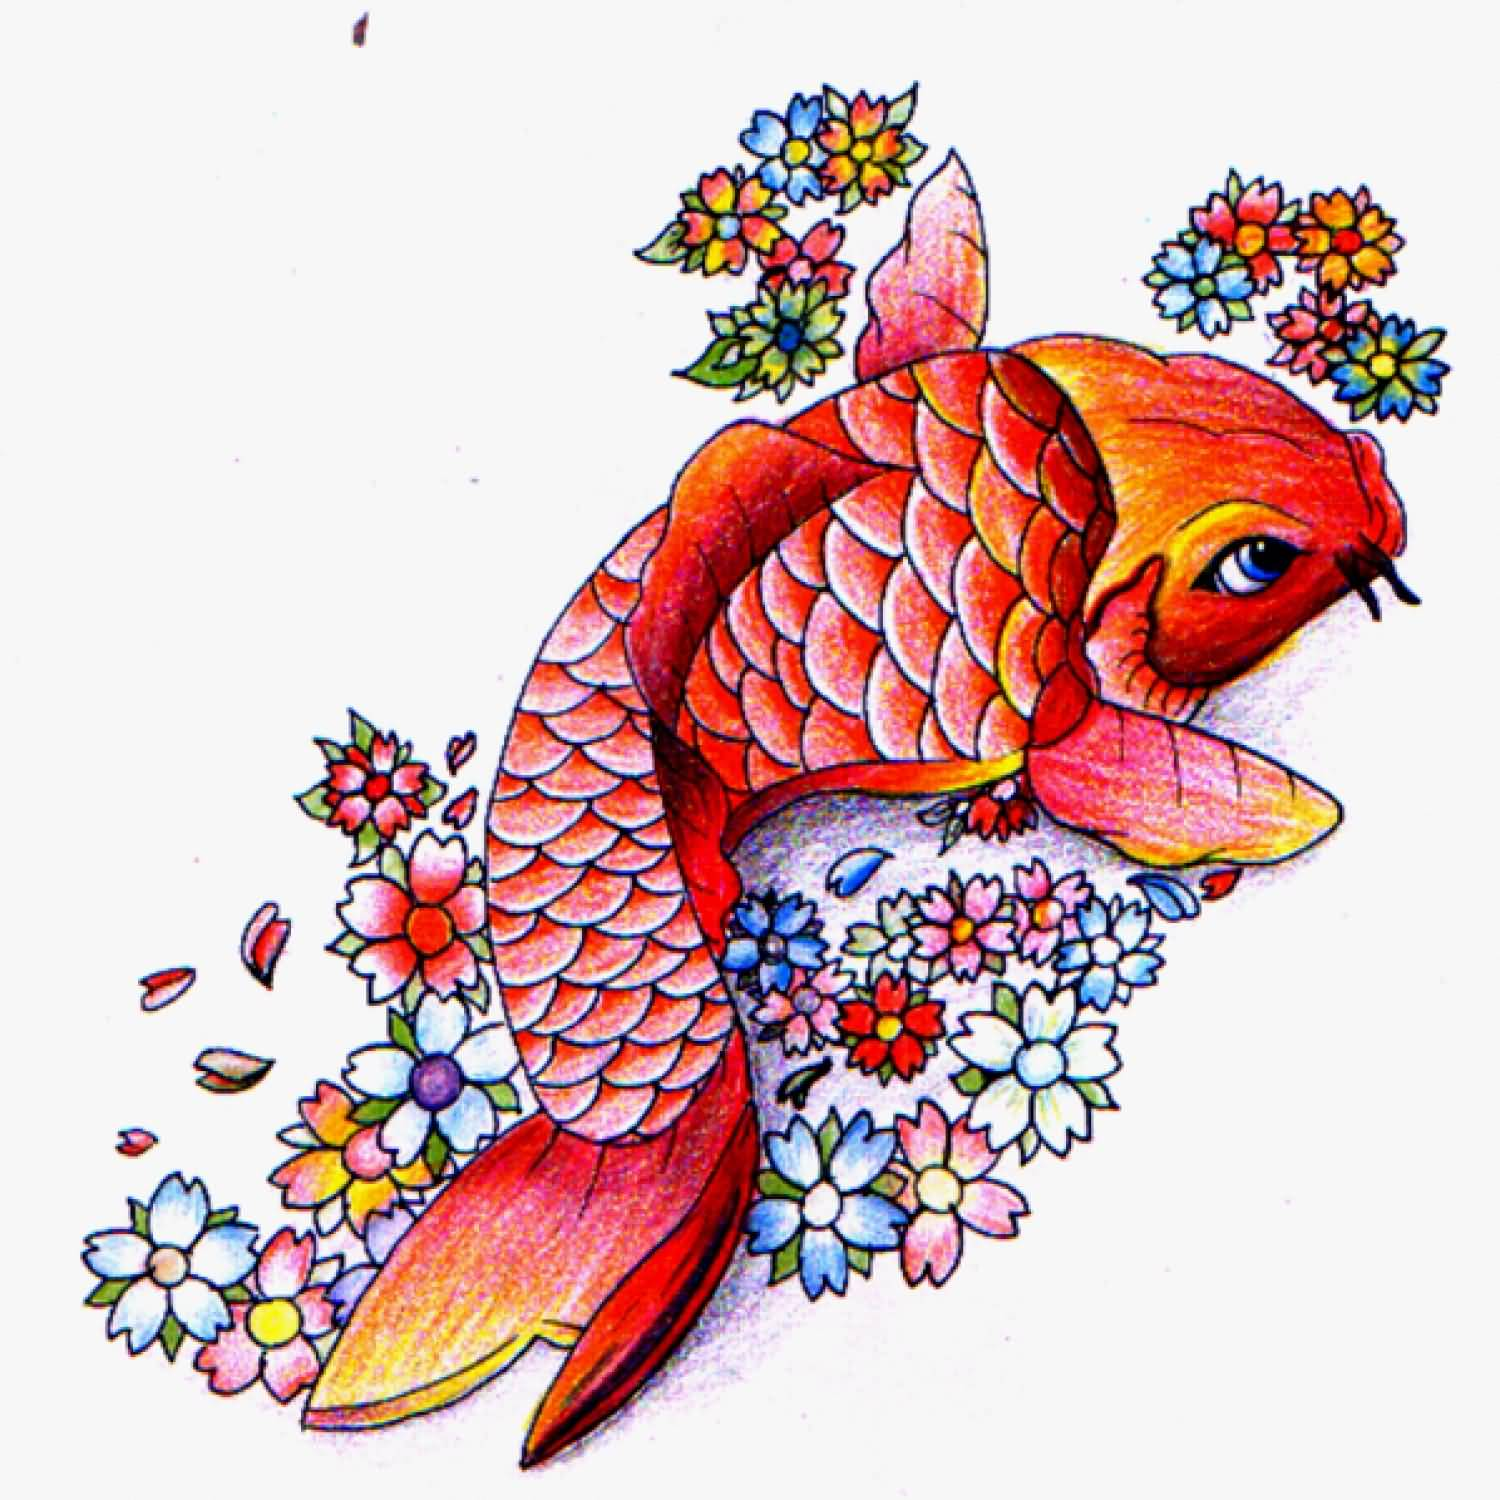 Flowers and Koi Fish Tattoo Design